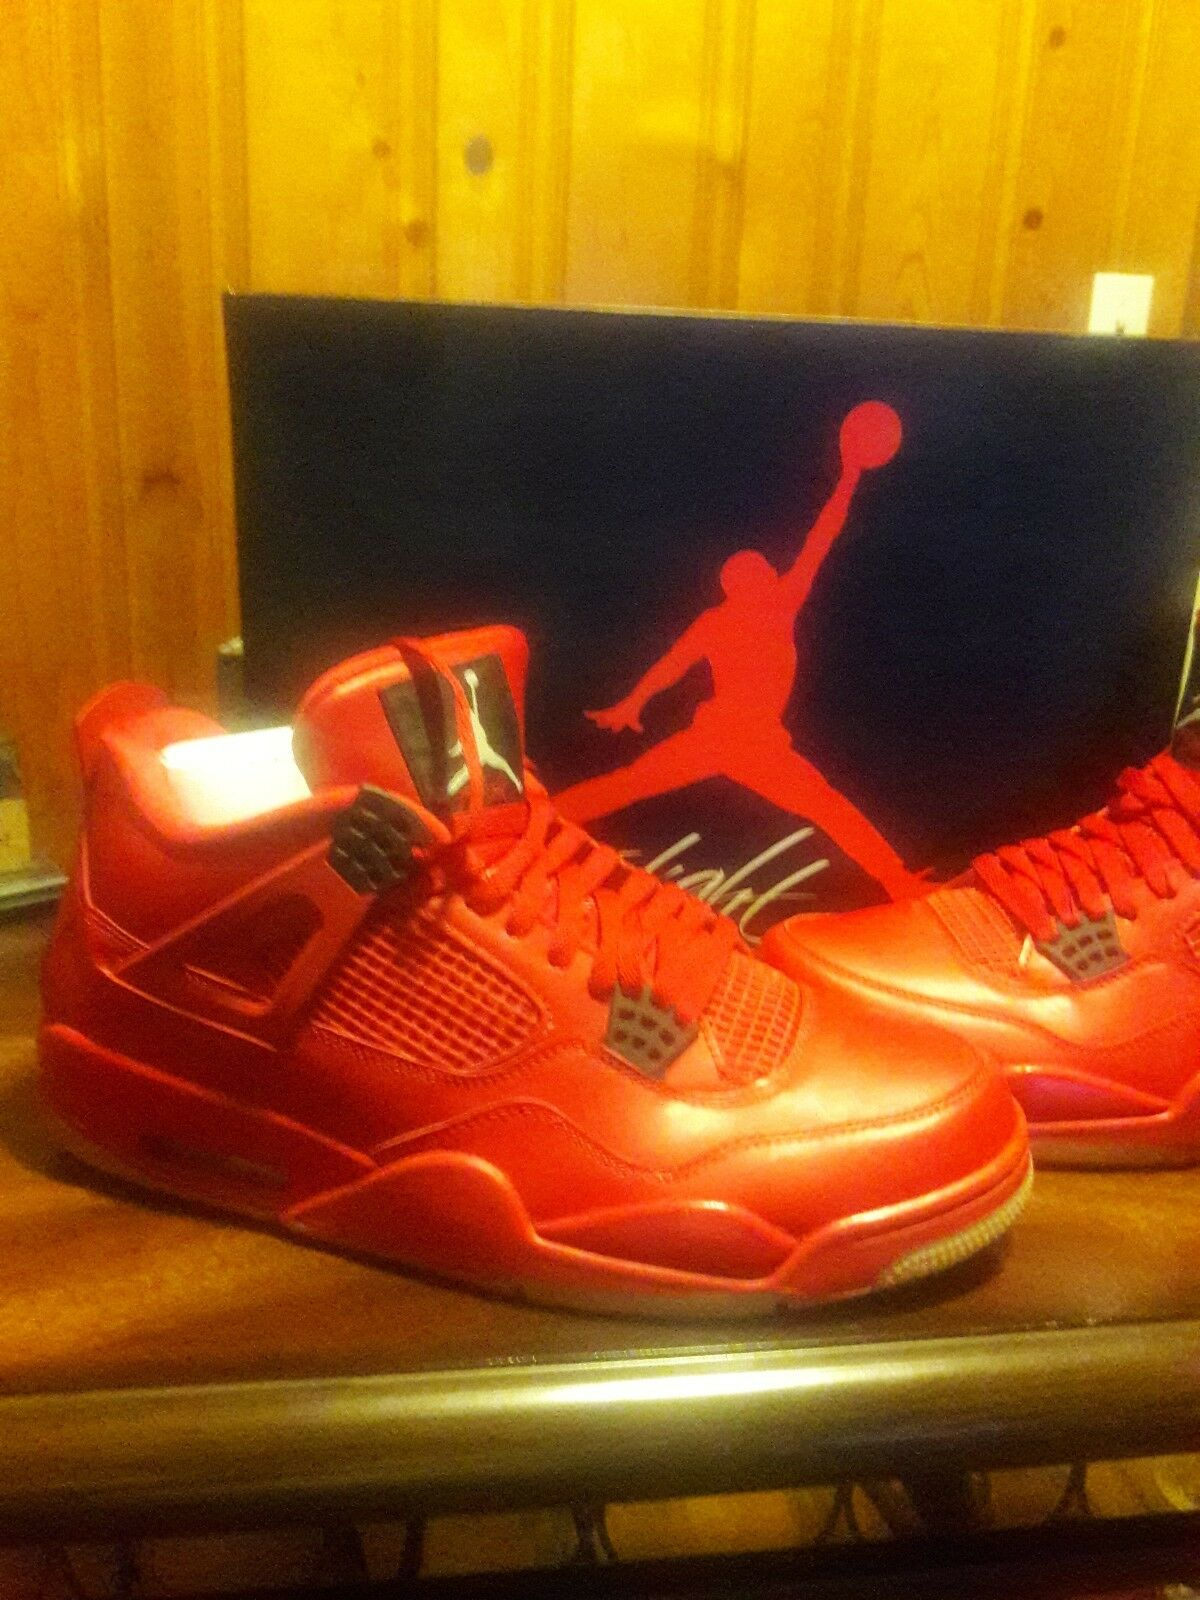 7f800bb6349 Retro 4 Jordan's Size 14wmns Mms Nrg 12.5 Size nxpdai7230-Athletic Shoes